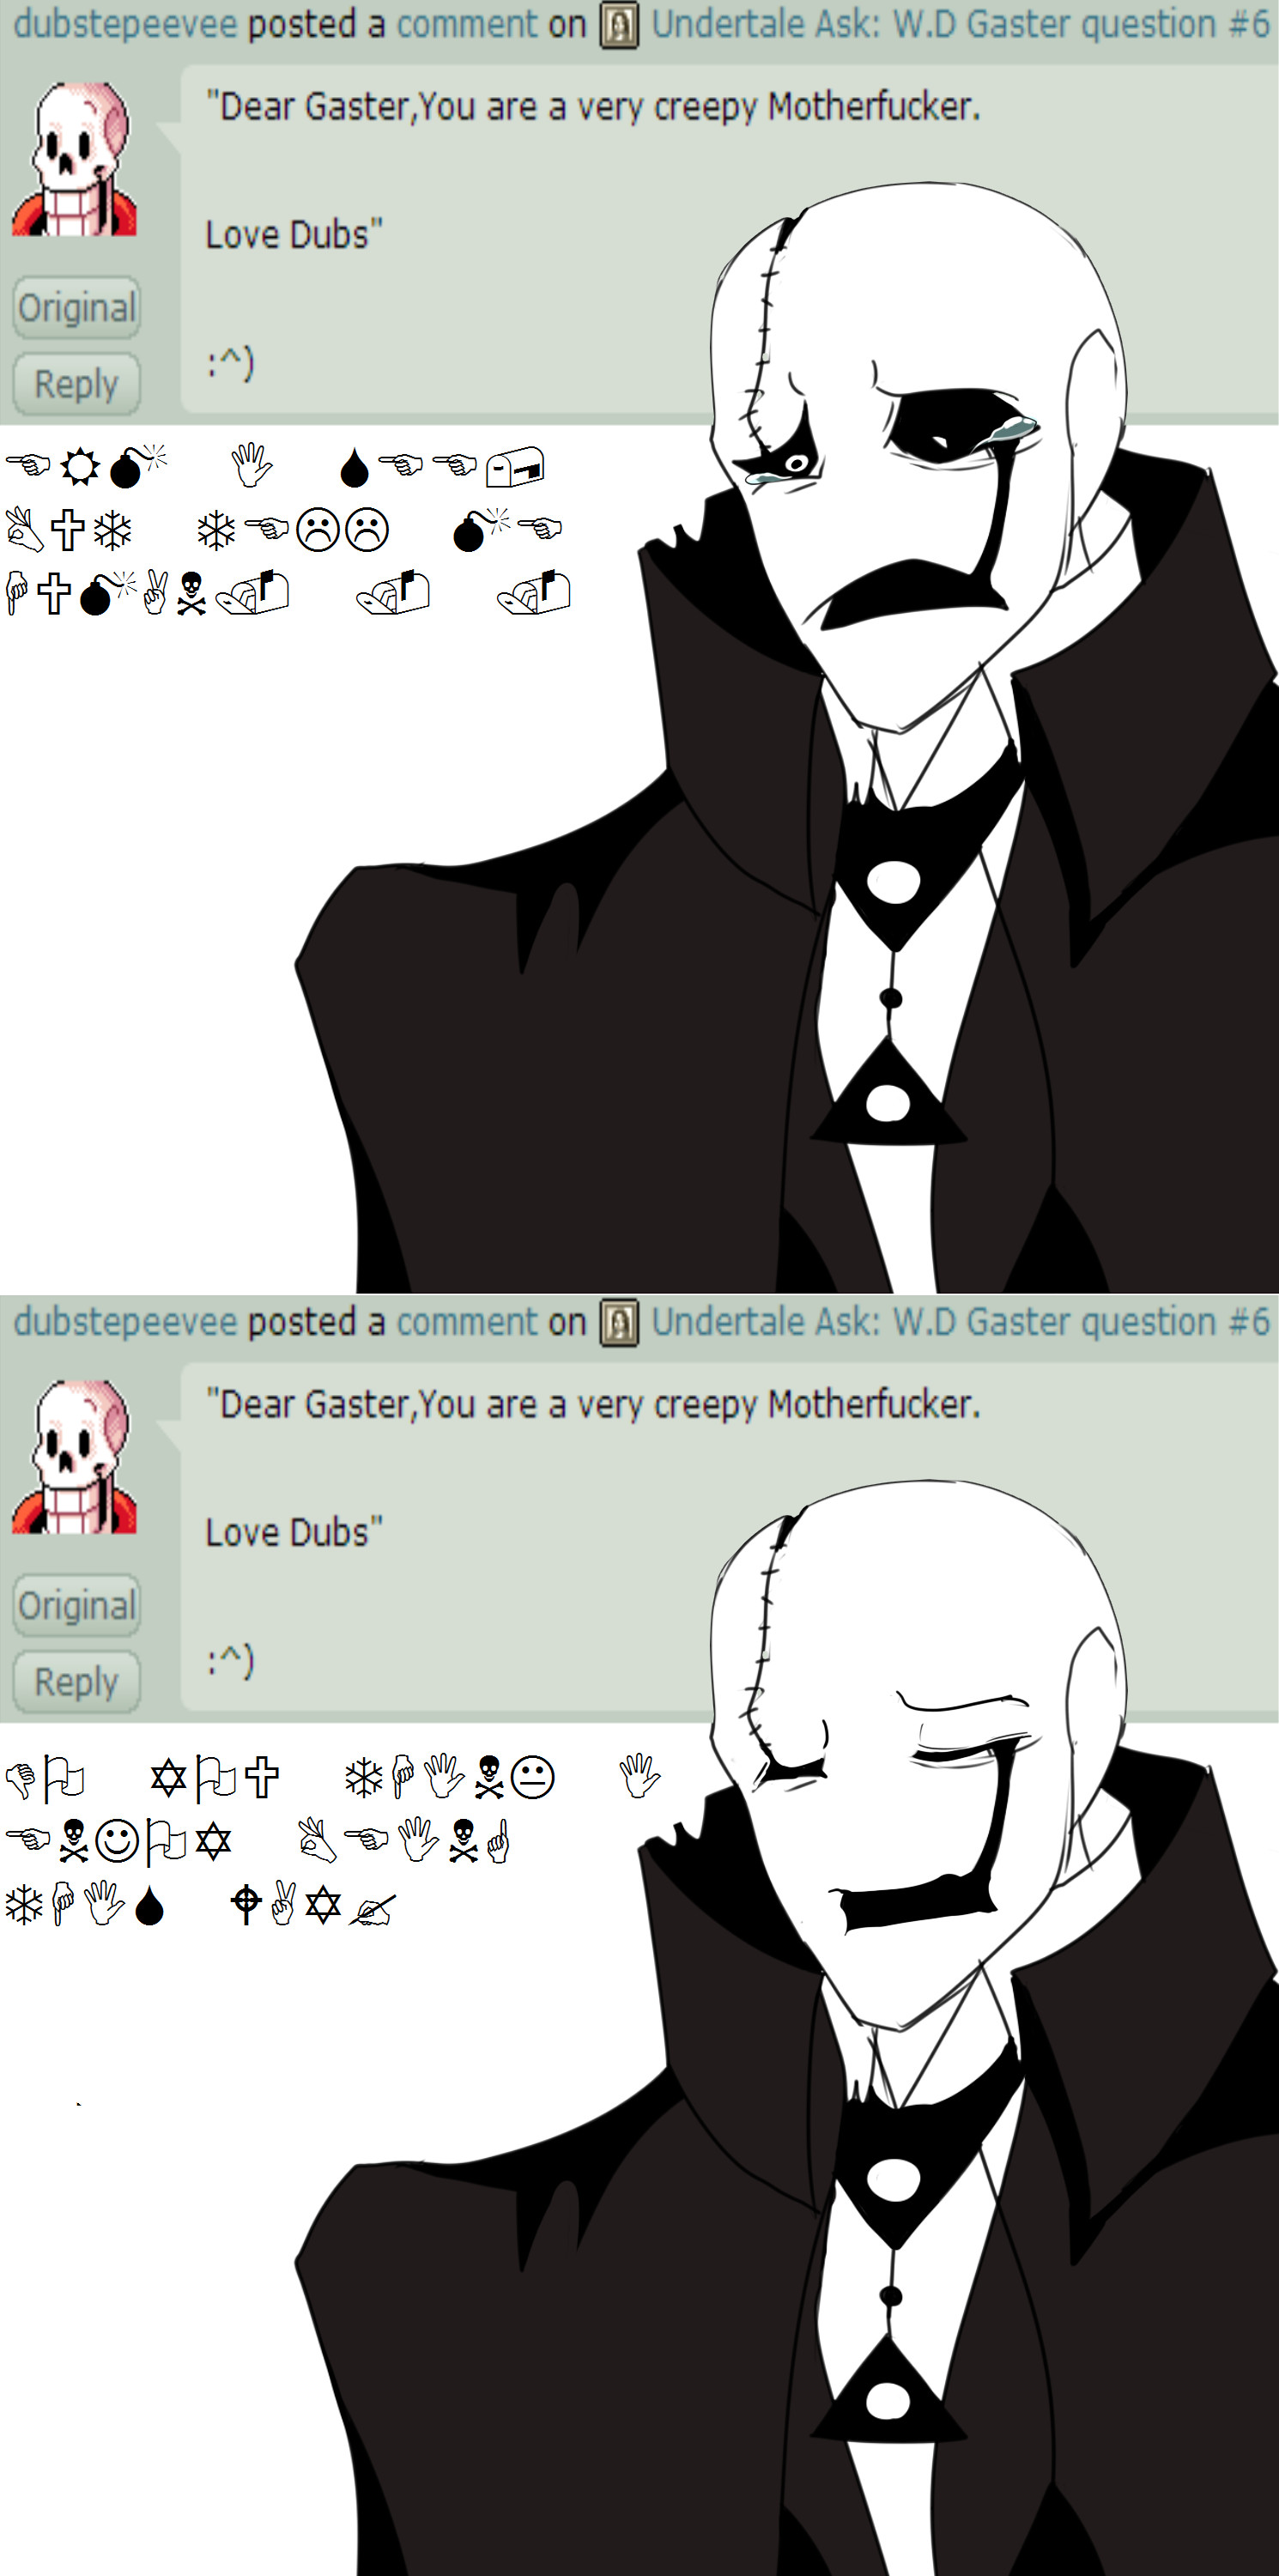 … Undertale Ask: W.D Gaster question #7 by The-Star-Hunter